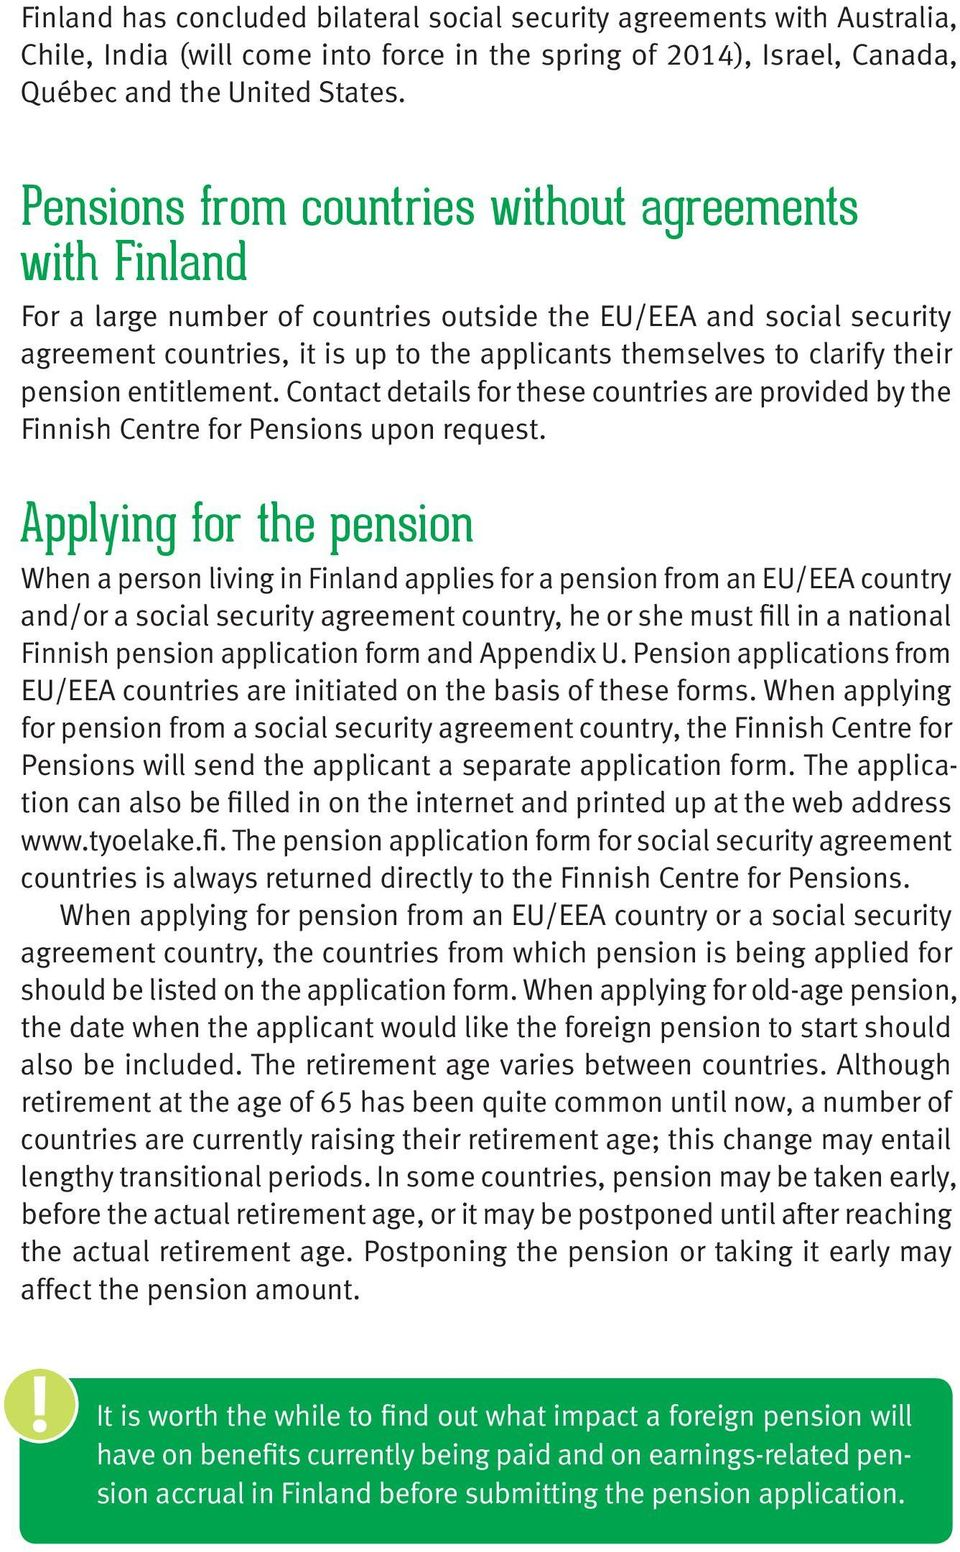 their pension entitlement. Contact details for these countries are provided by the Finnish Centre for Pensions upon request.